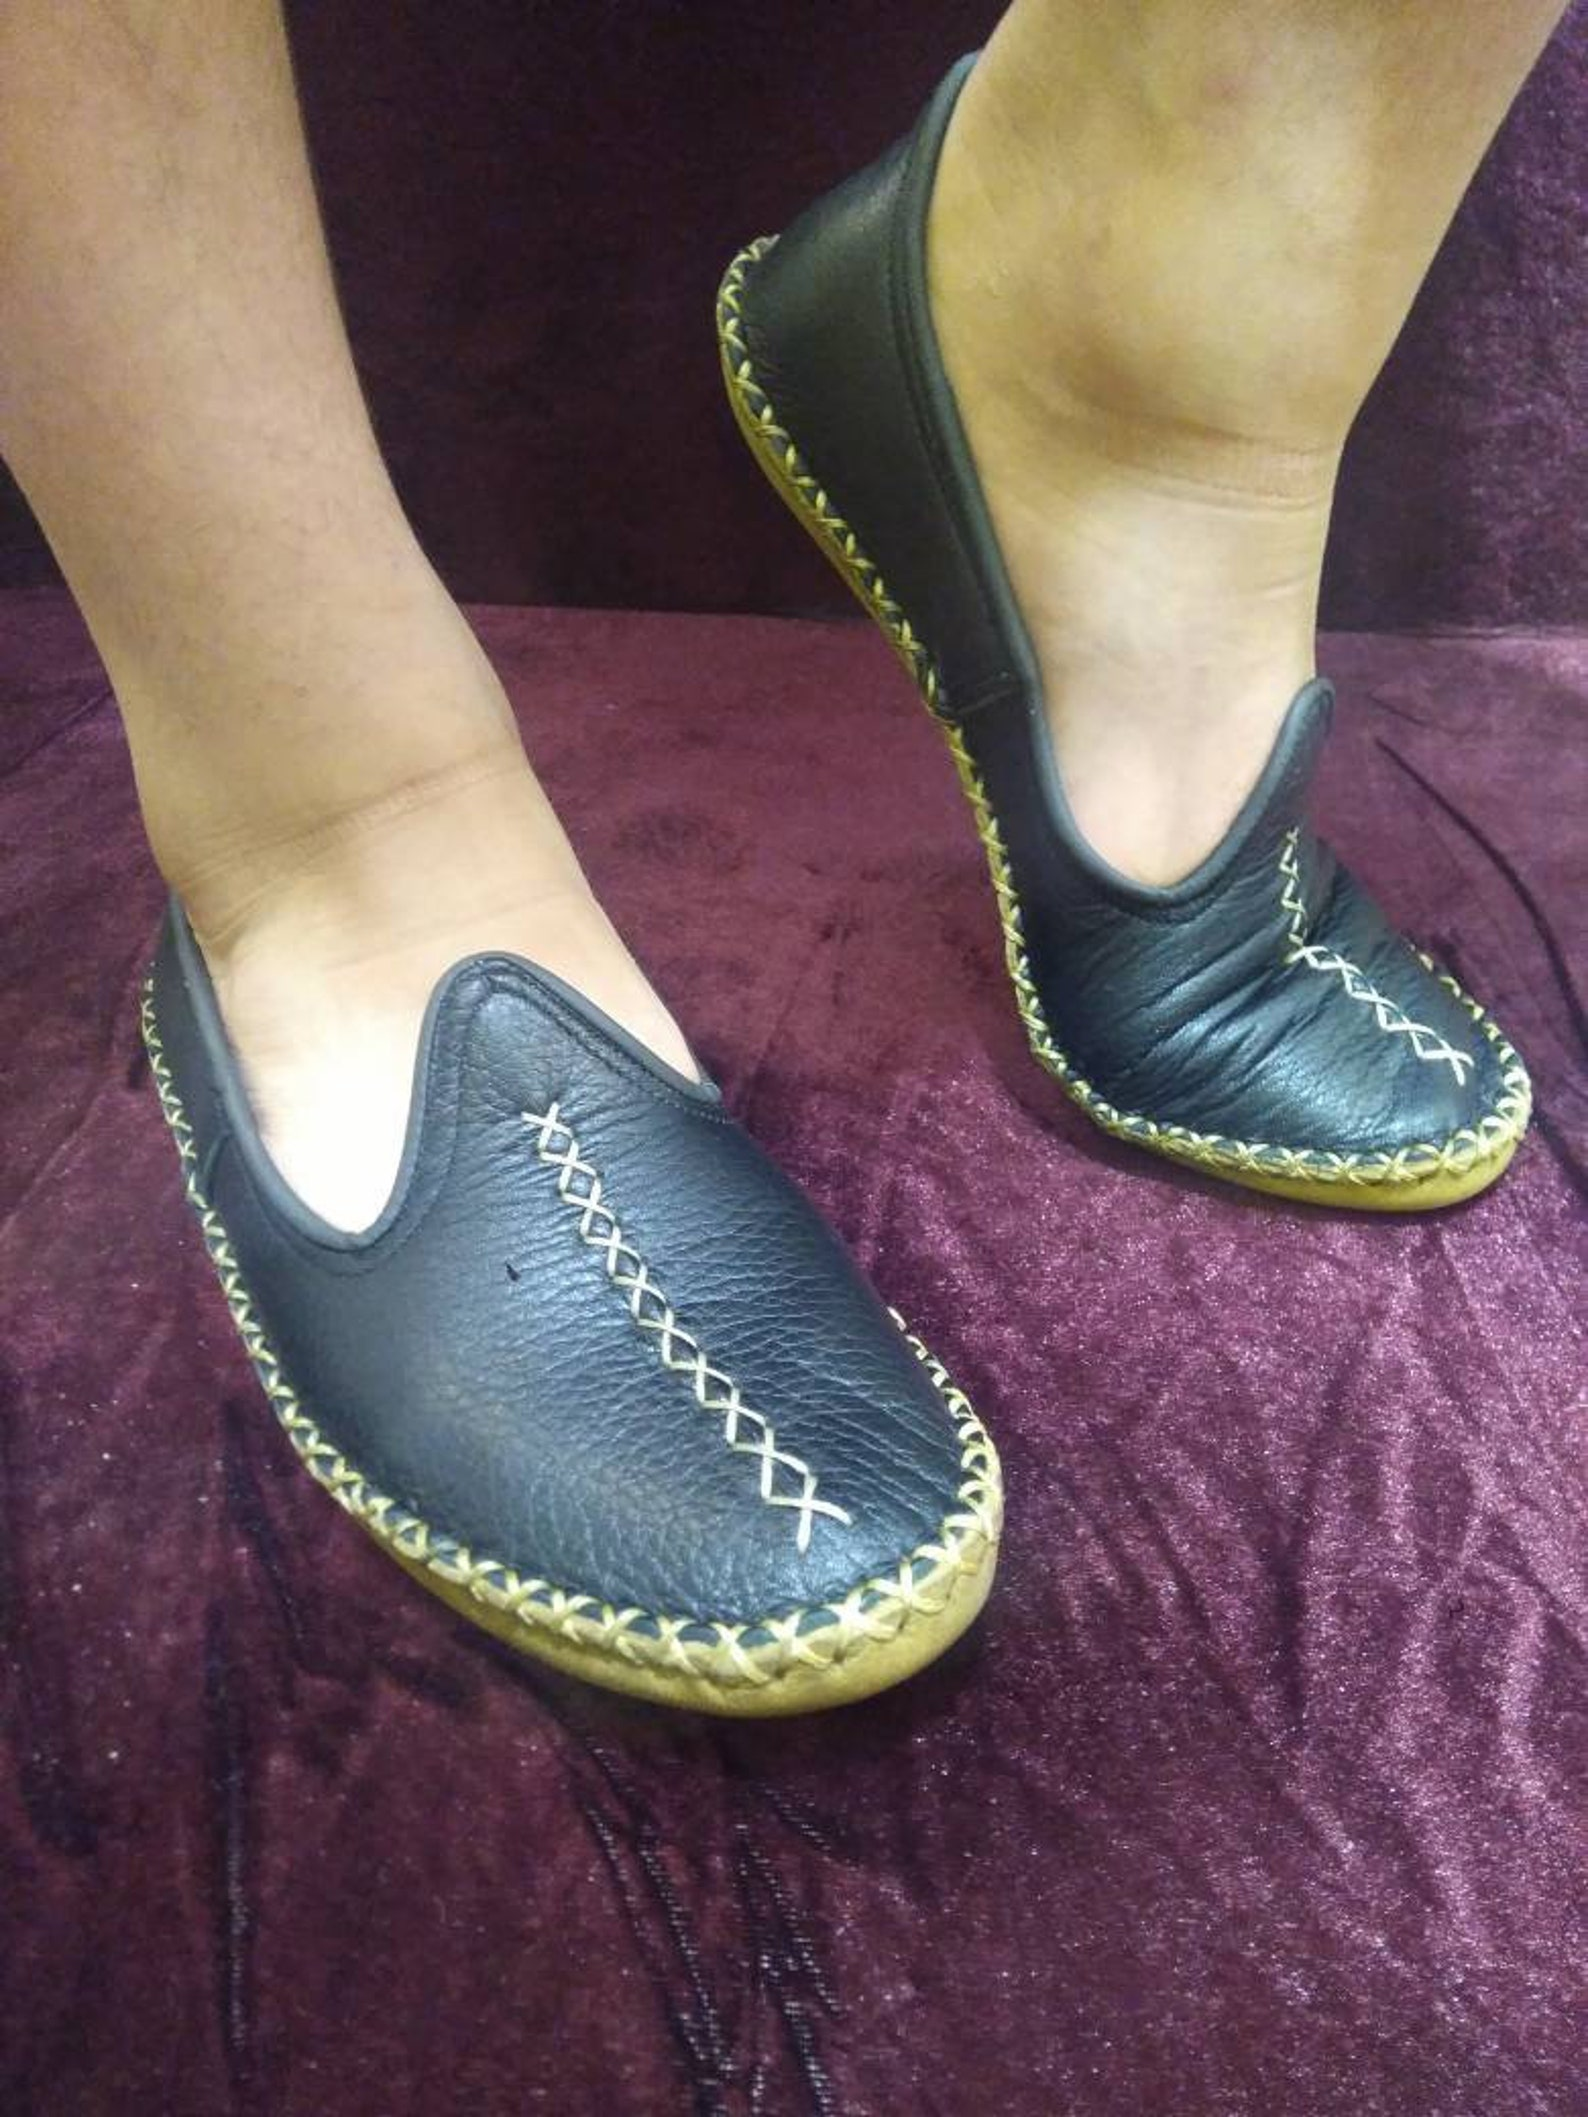 rawhide sandals, unisex shoes, naturel leather shoes, casual shoes, moccasin, leather flat shoes, daily shoes, ballet flats, art